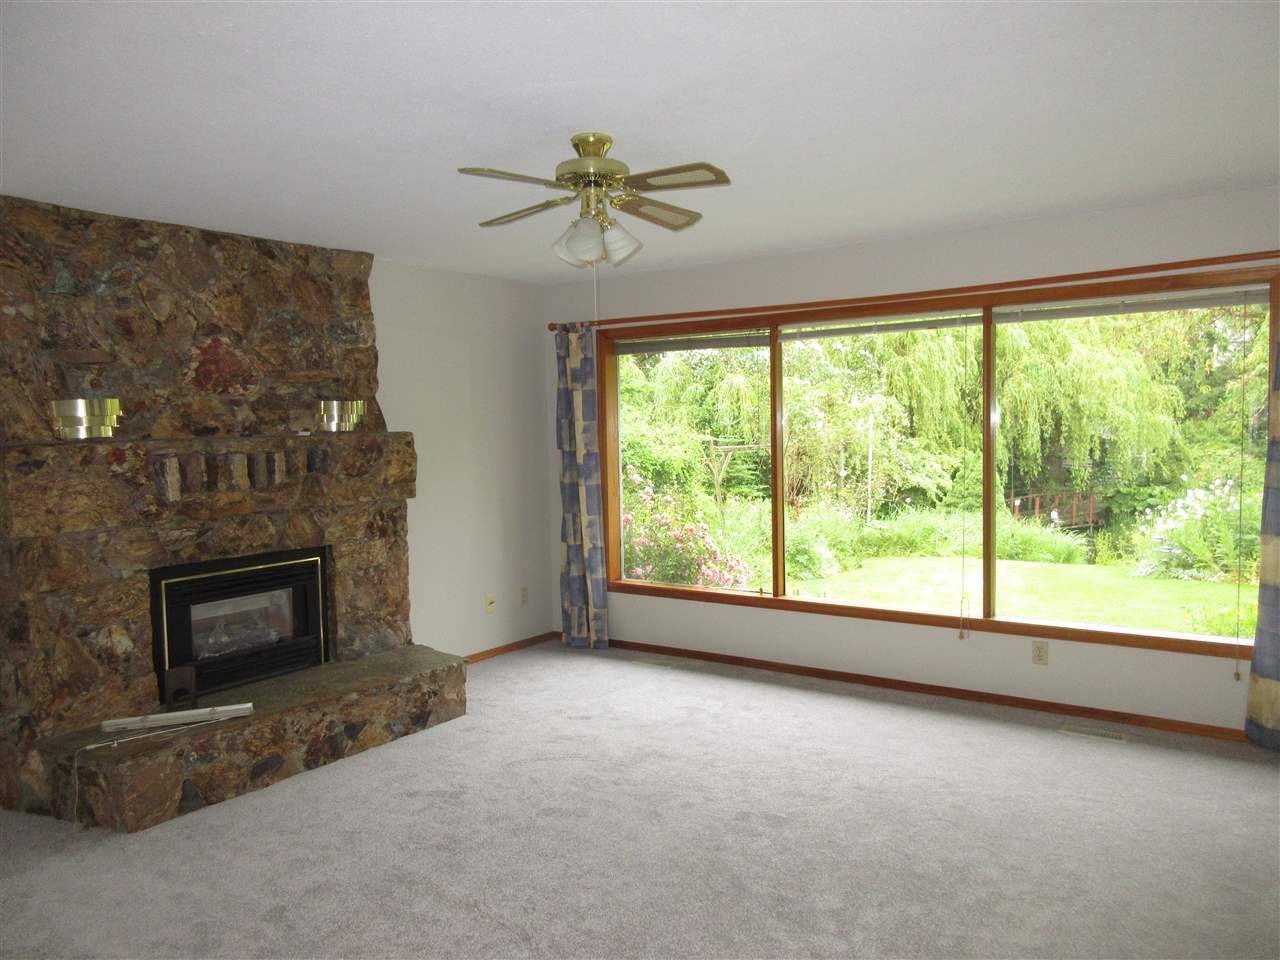 Photo 11: 45625 WORTHINGTON Place in Sardis: Sardis West Vedder Rd House for sale : MLS(r) # R2176017